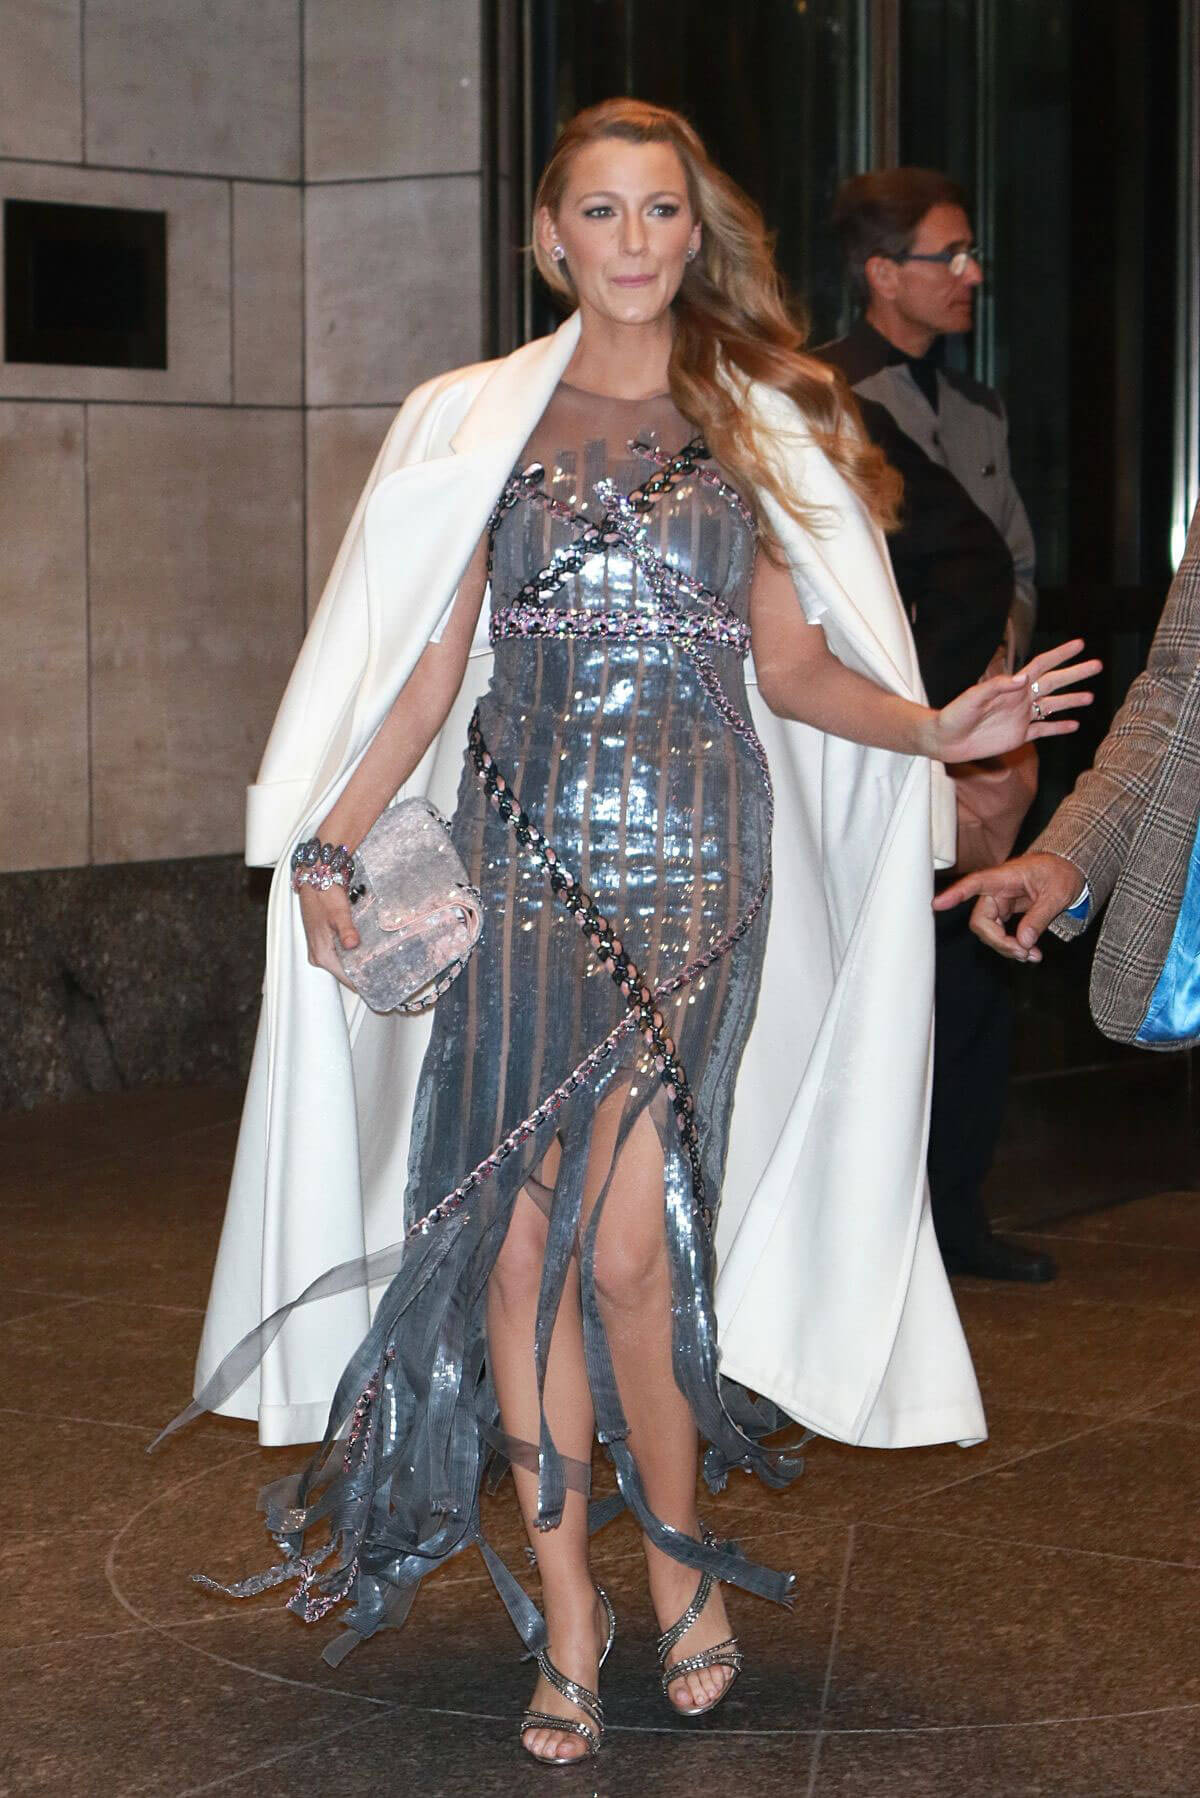 Blake Lively Stills at All I See Is You Screening in New York Images